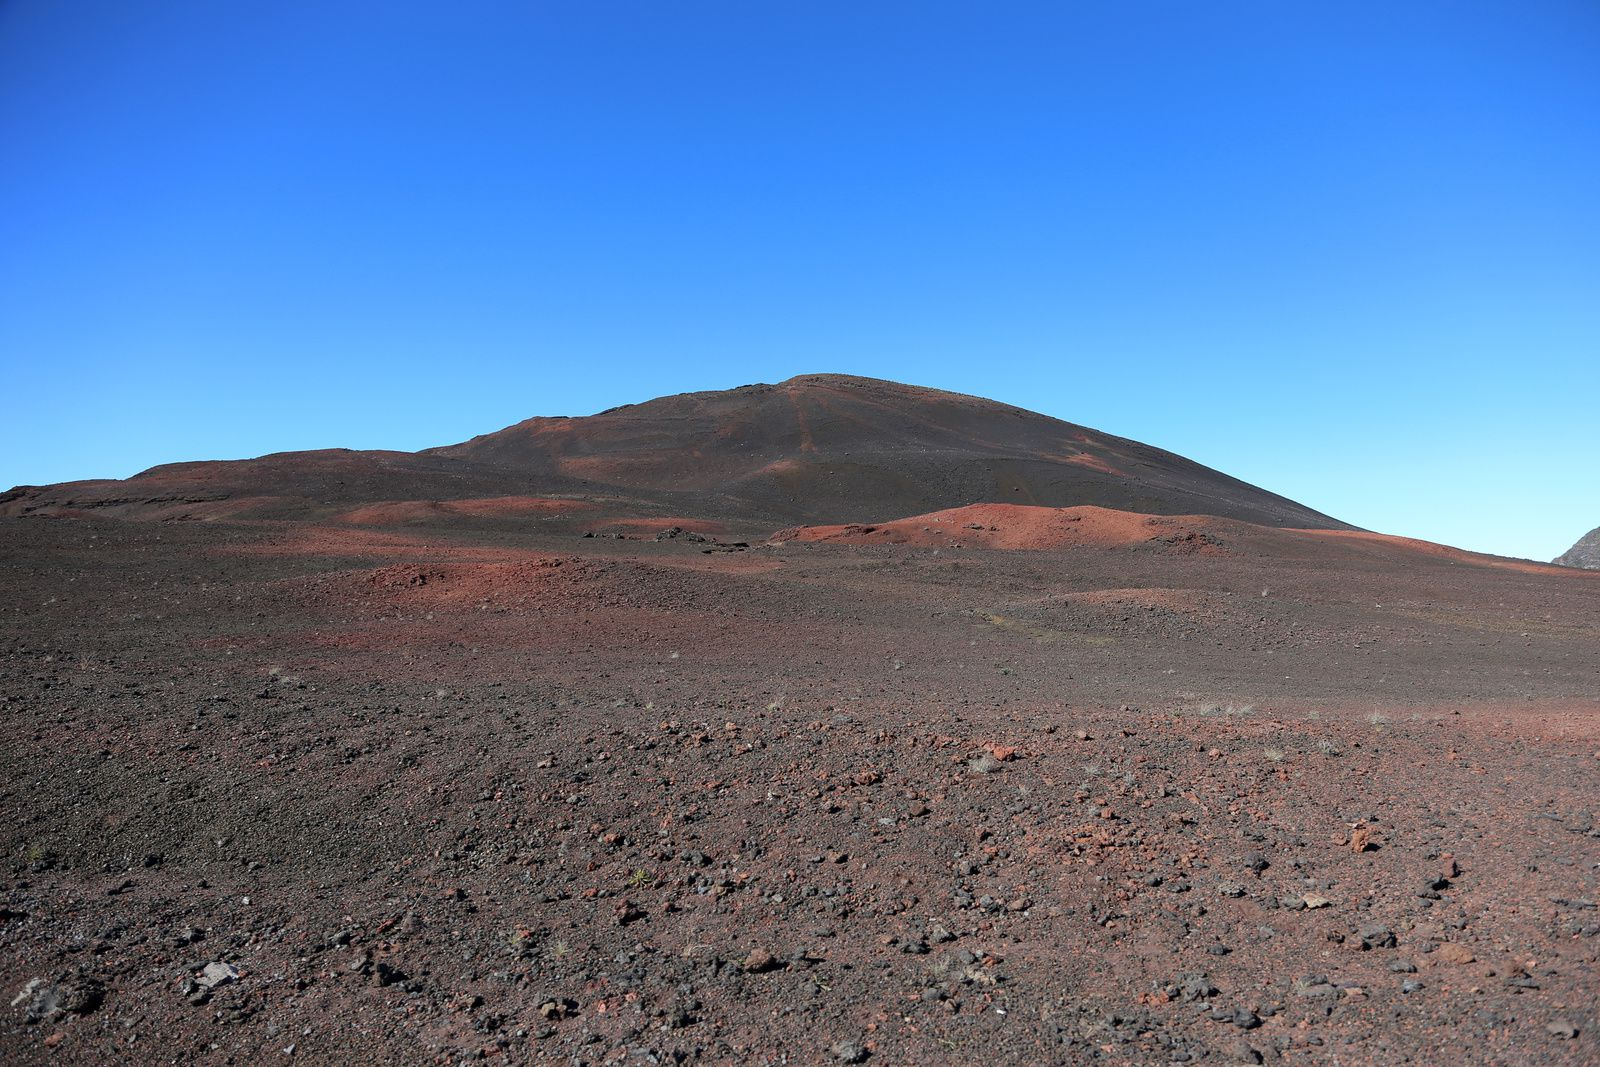 Le Piton Chisny, plain des Sables (to be continued) - photo © Bernard Duyck / june 2017